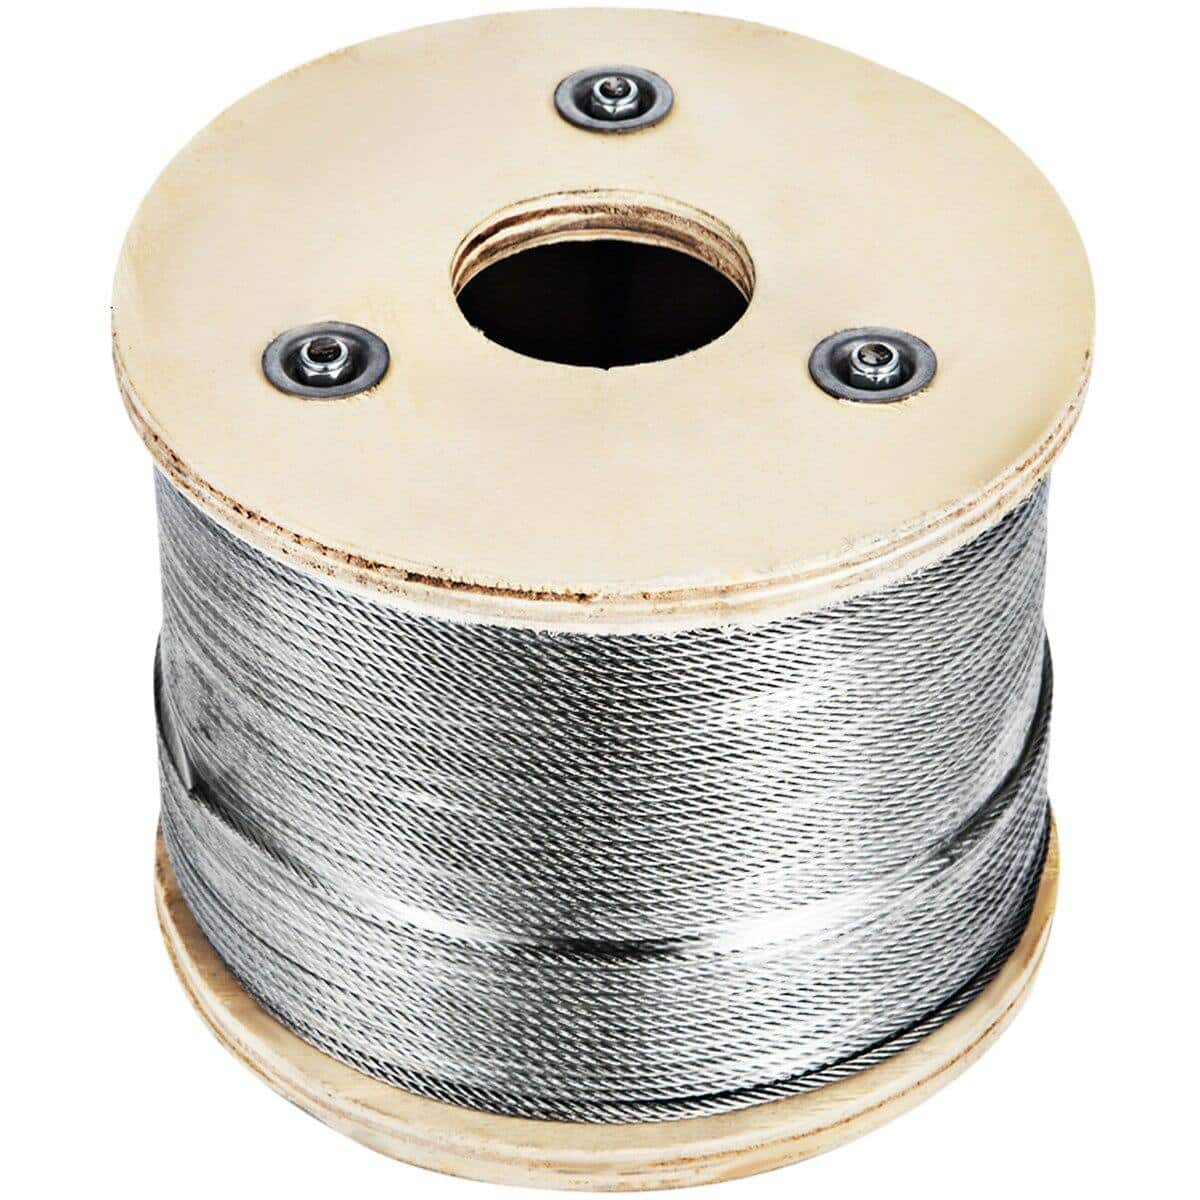 "VEVOR Cable Railing Type 316 Stainless Steel Wire Rope Cable, 1/8"",7x7, 500 Ft Reel $56.90 + Free Shipping"